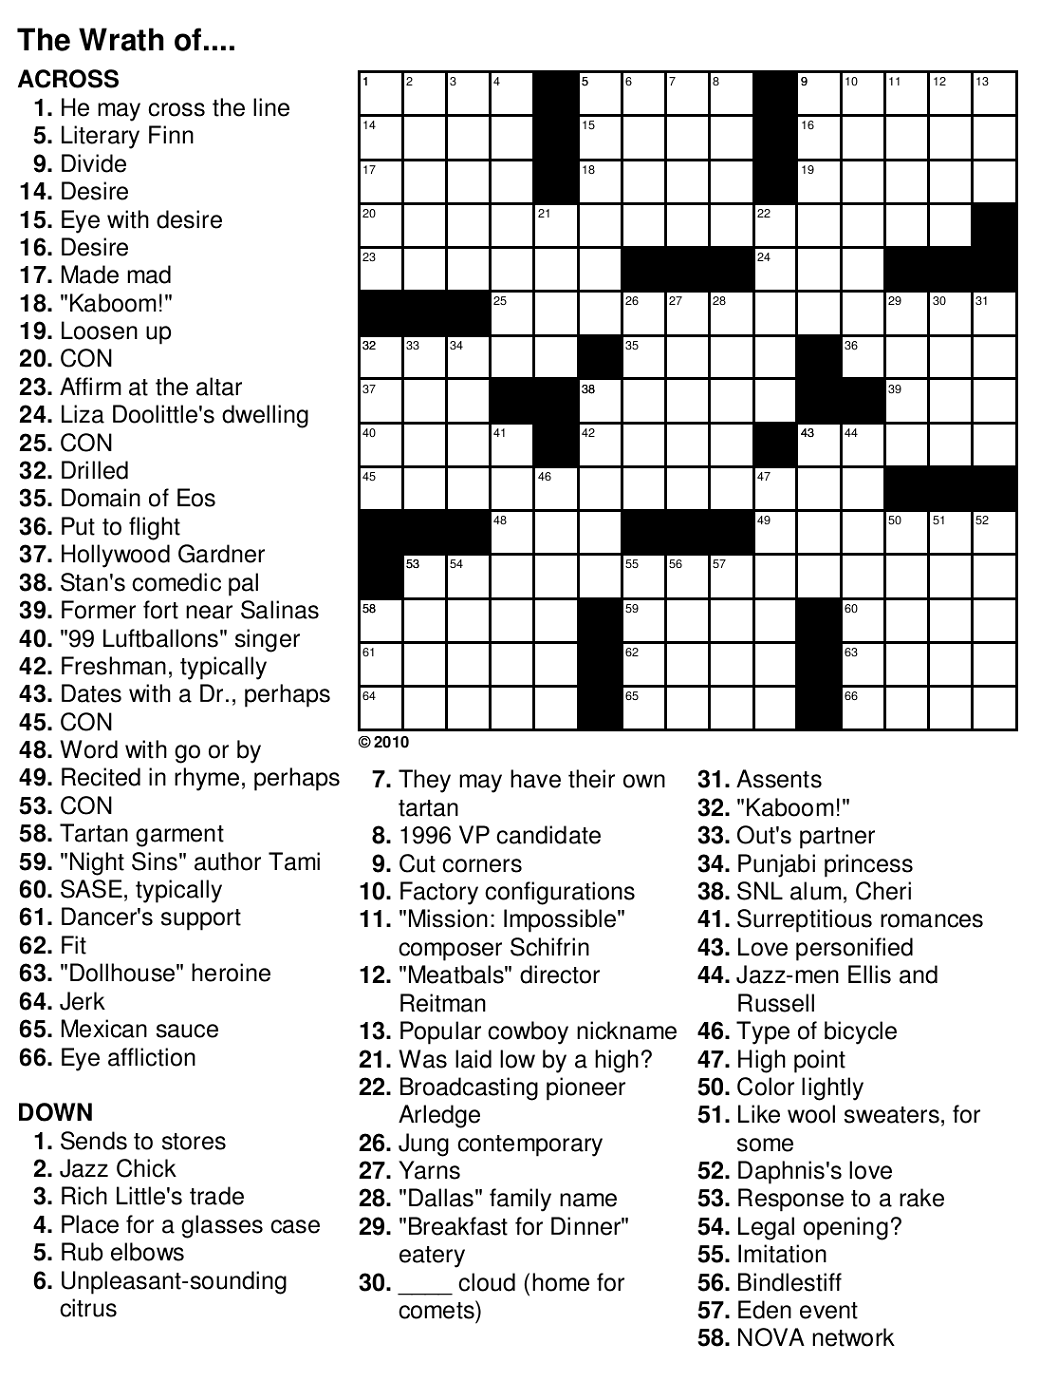 image about Easy Crossword Puzzle Printable named Simple Crossword Puzzles for Seniors Sport Shelter